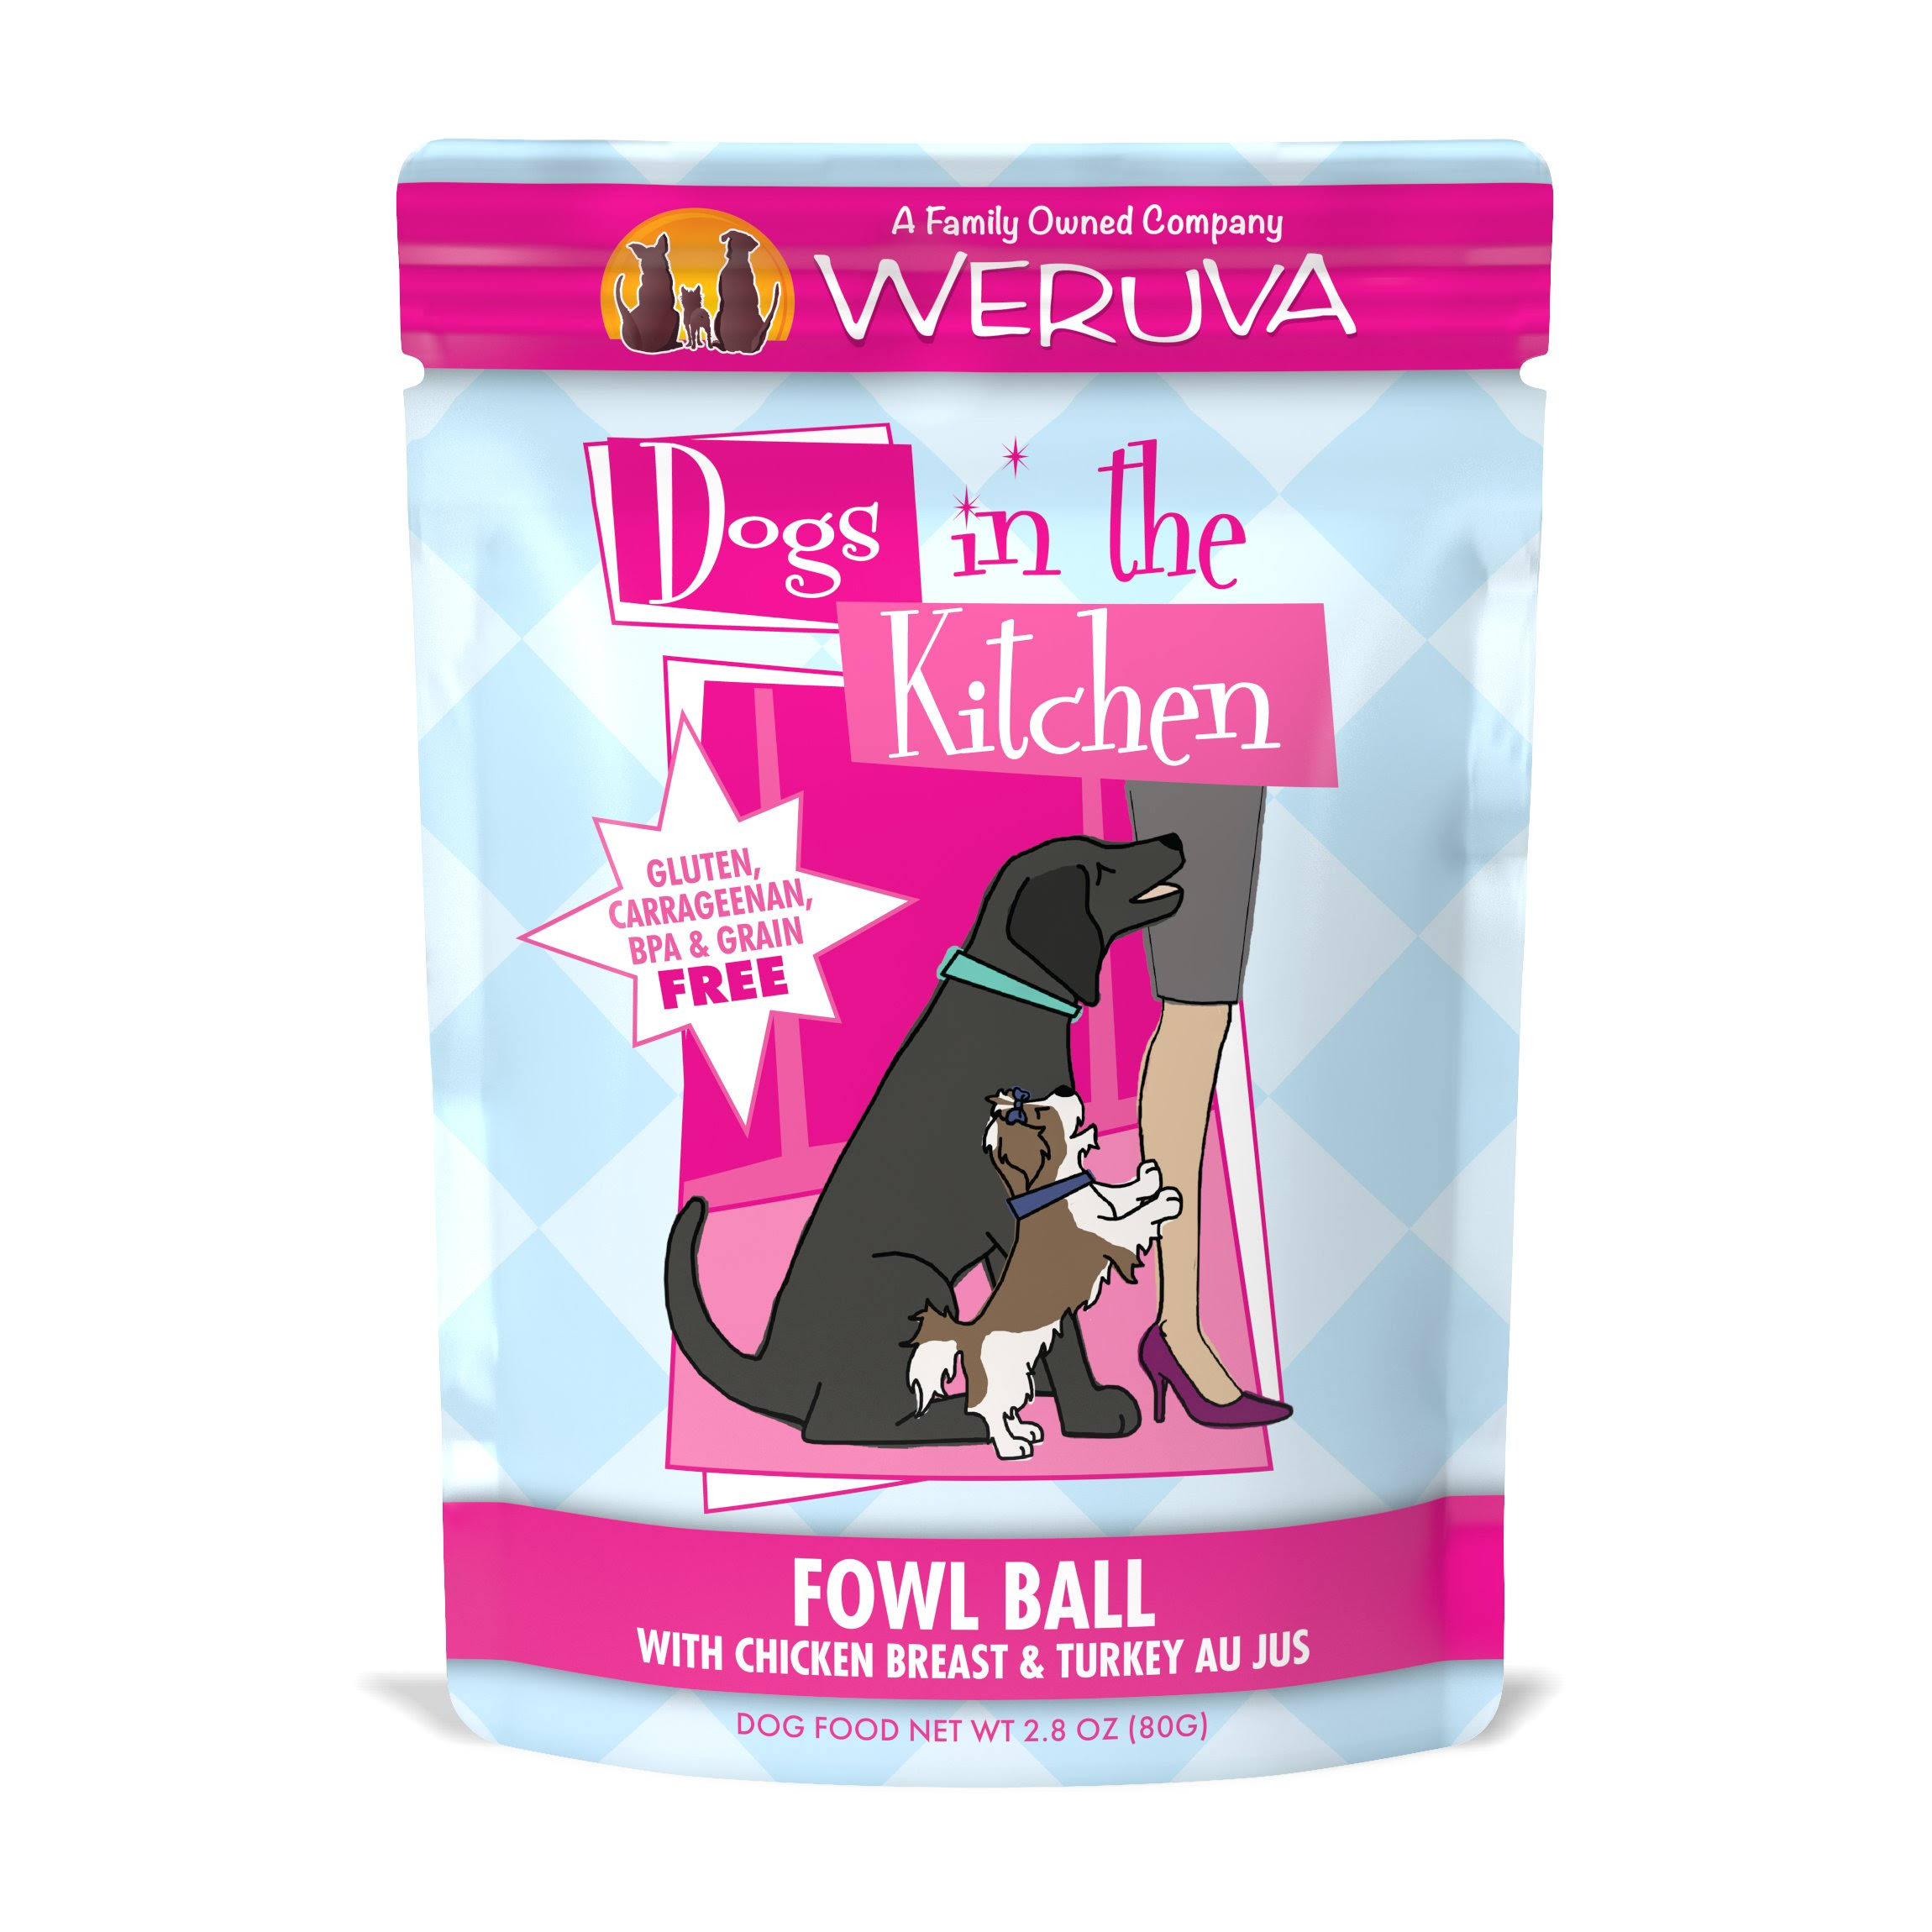 Weruva Dogs in the Kitchen Dog Food - Fowl Ball